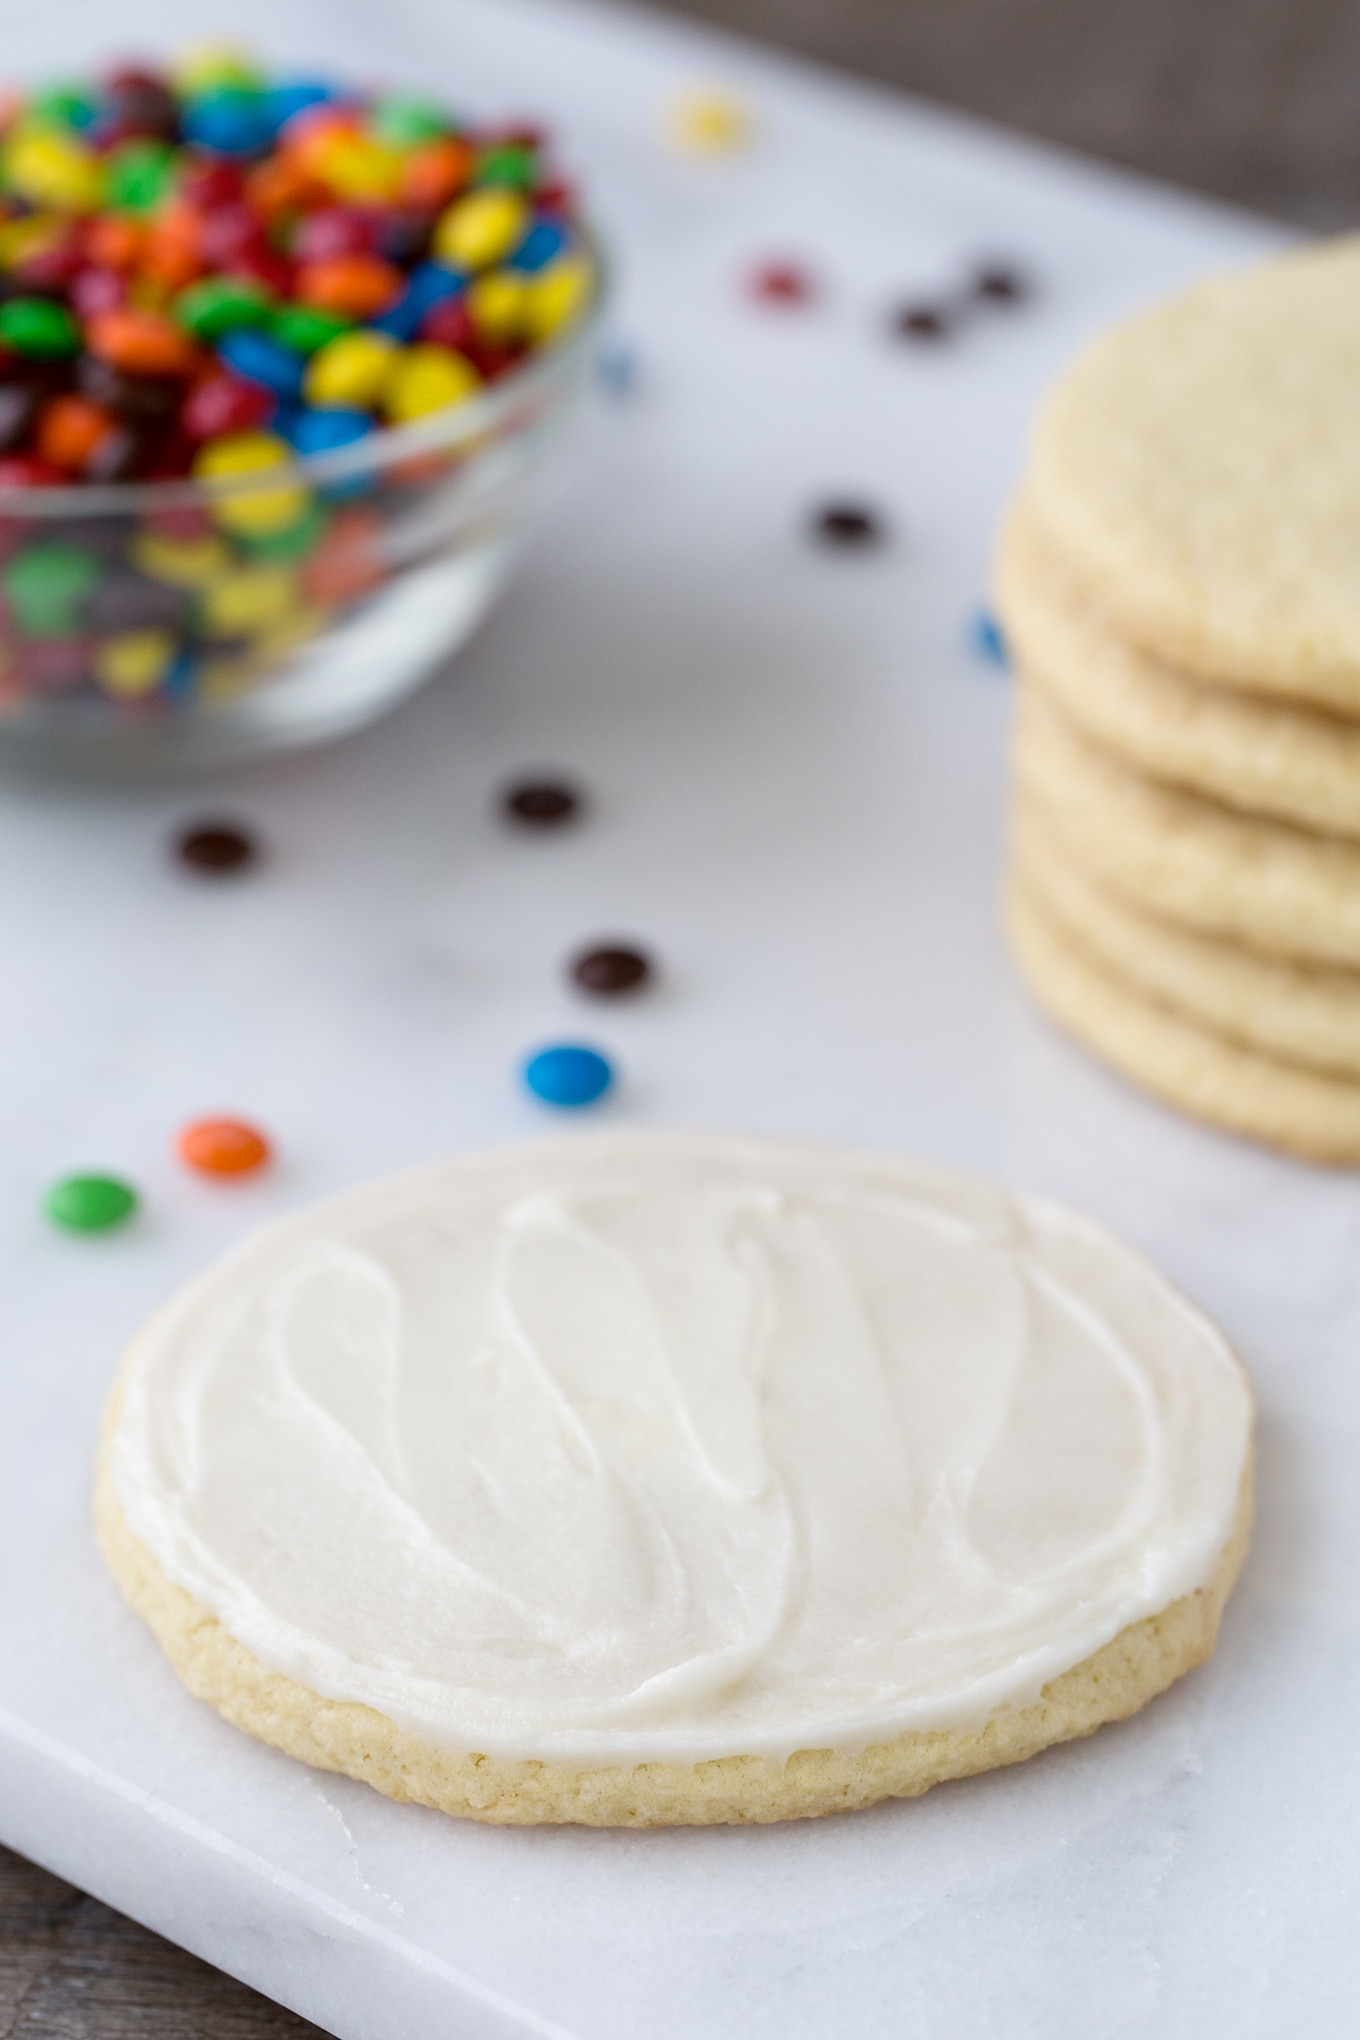 Sour Cream Cookie with Creamy Homemade Buttercream Frosting